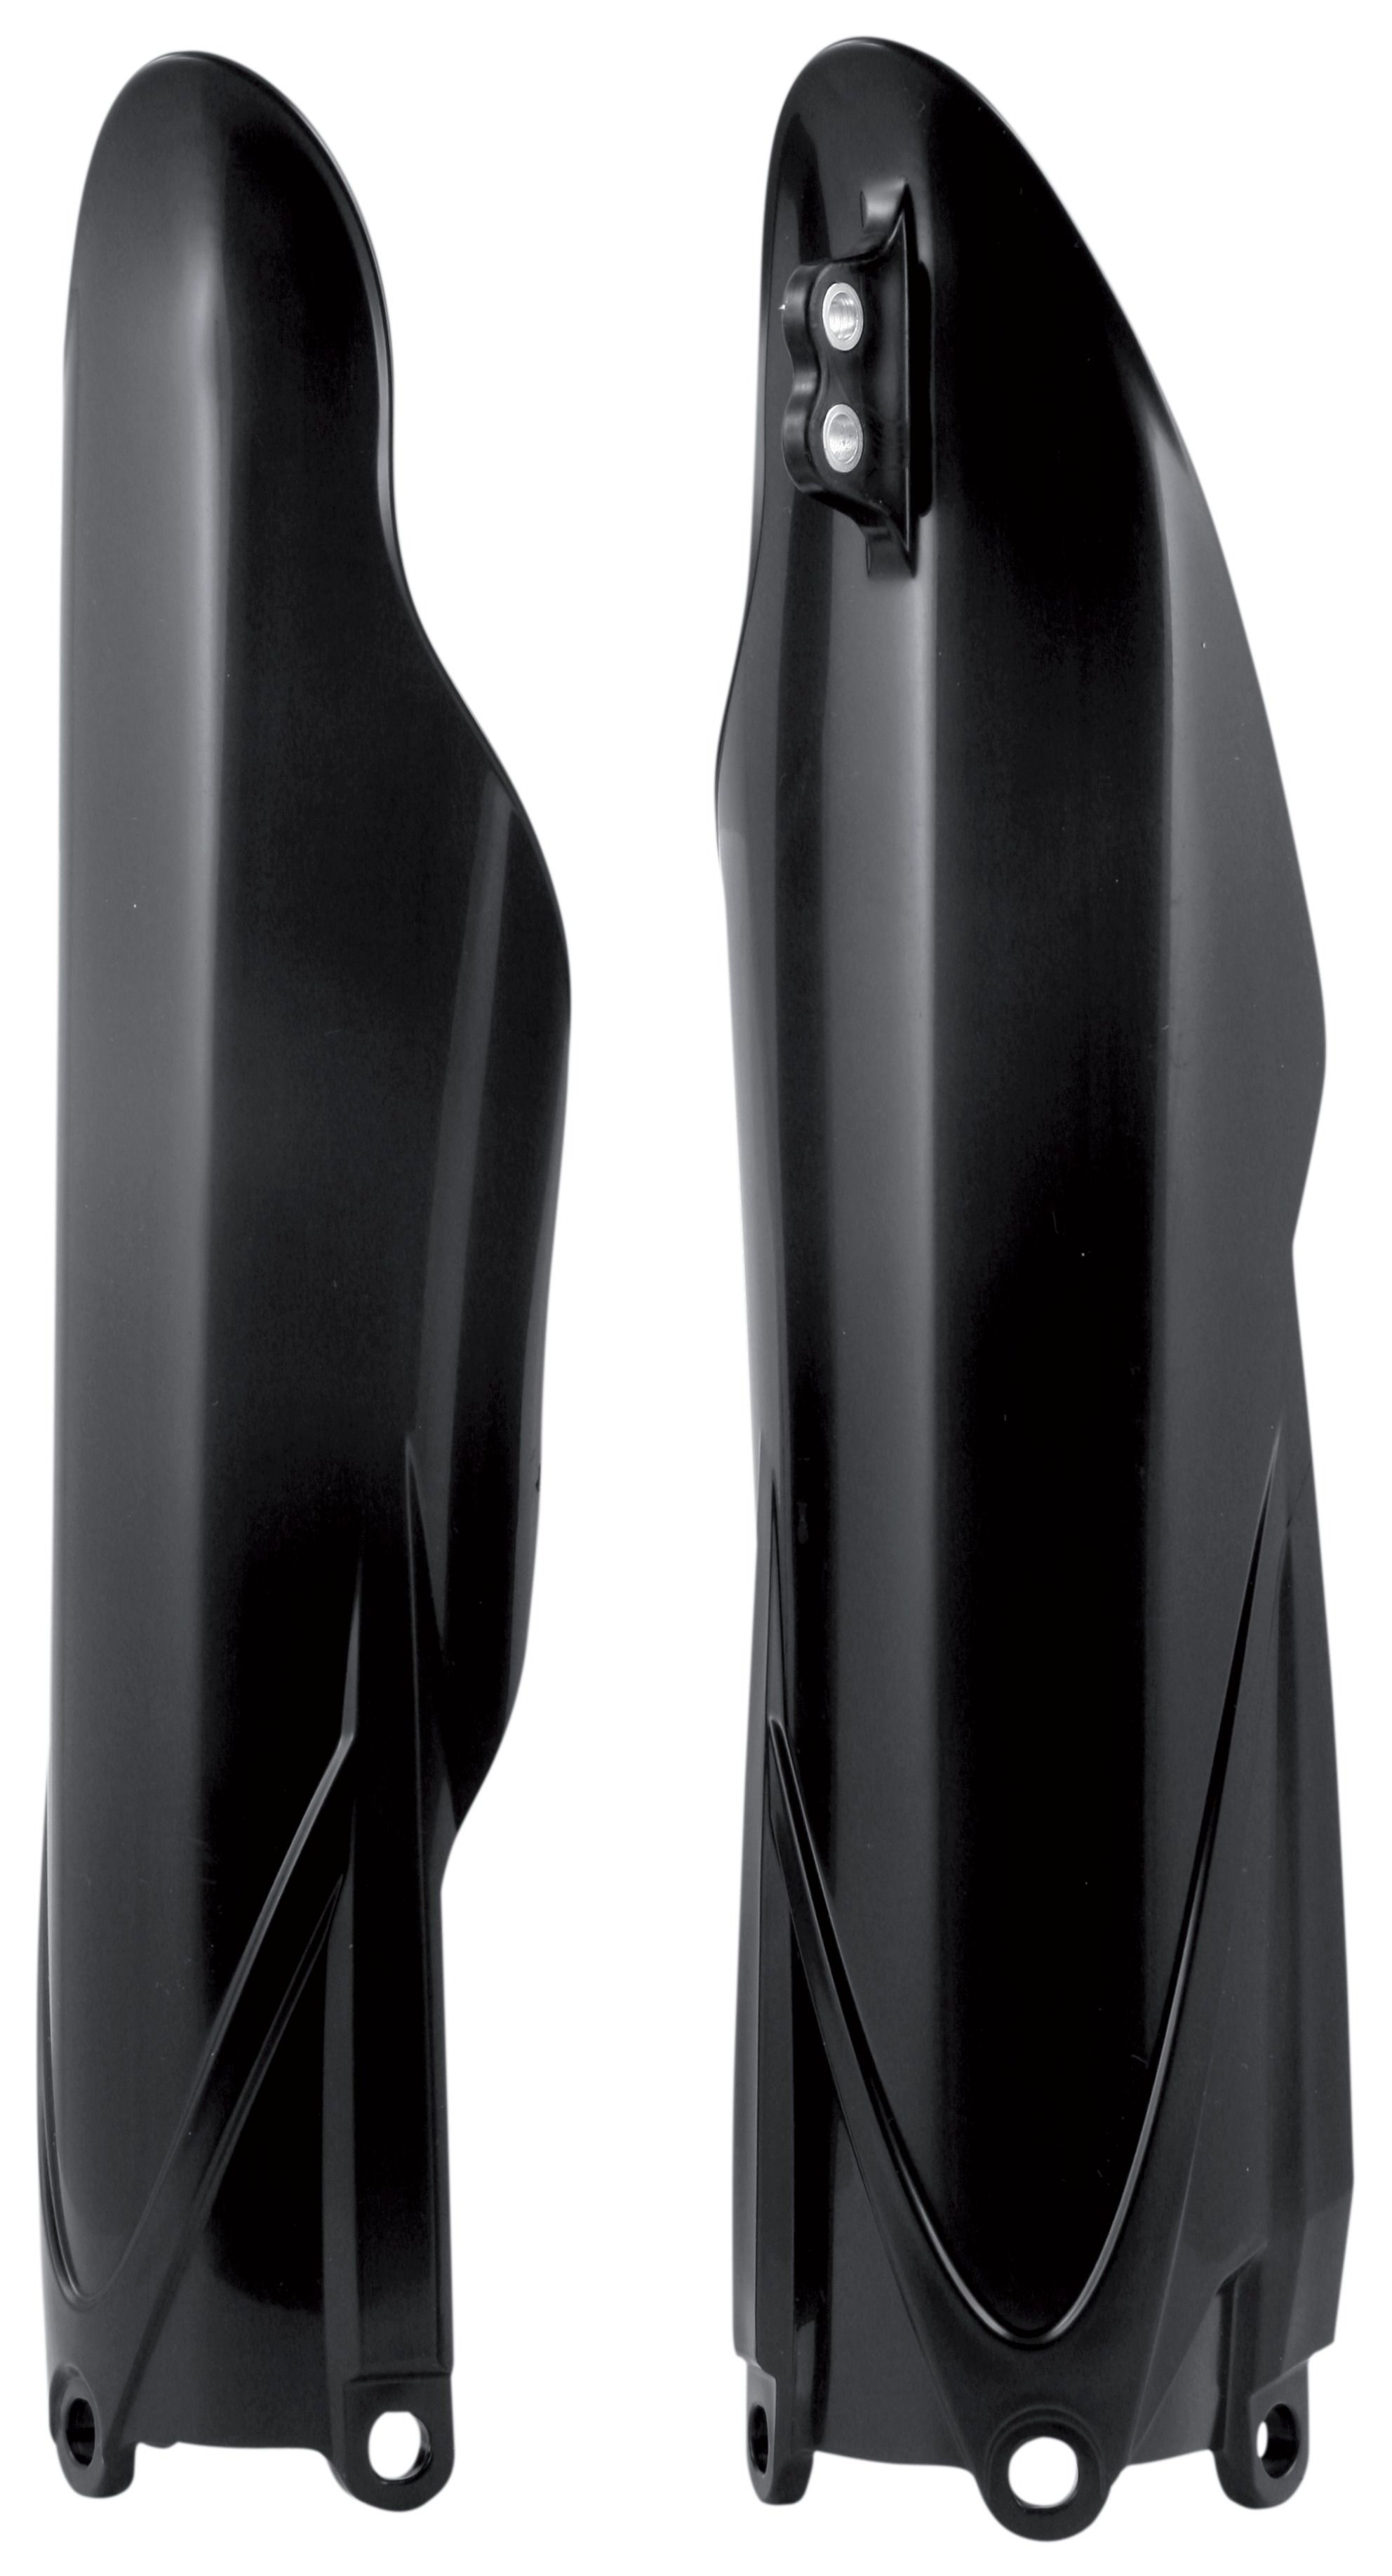 Acerbis Lower Fork Covers Yamaha Yz125 Yz250 2008 2014